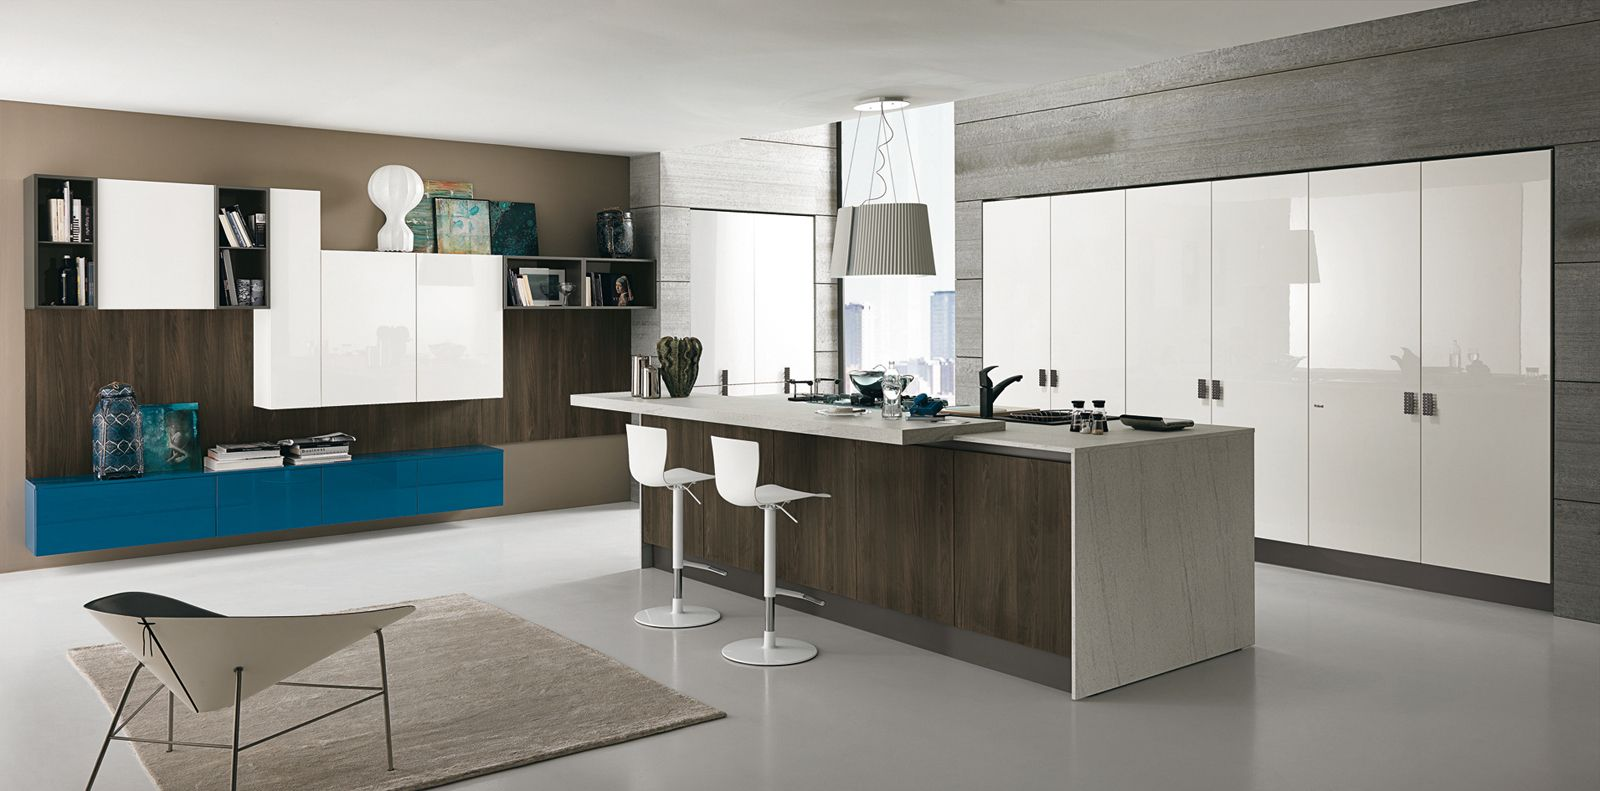 Beautiful Cucine Con Isola Centrale Prezzi Photos - Skilifts.us ...